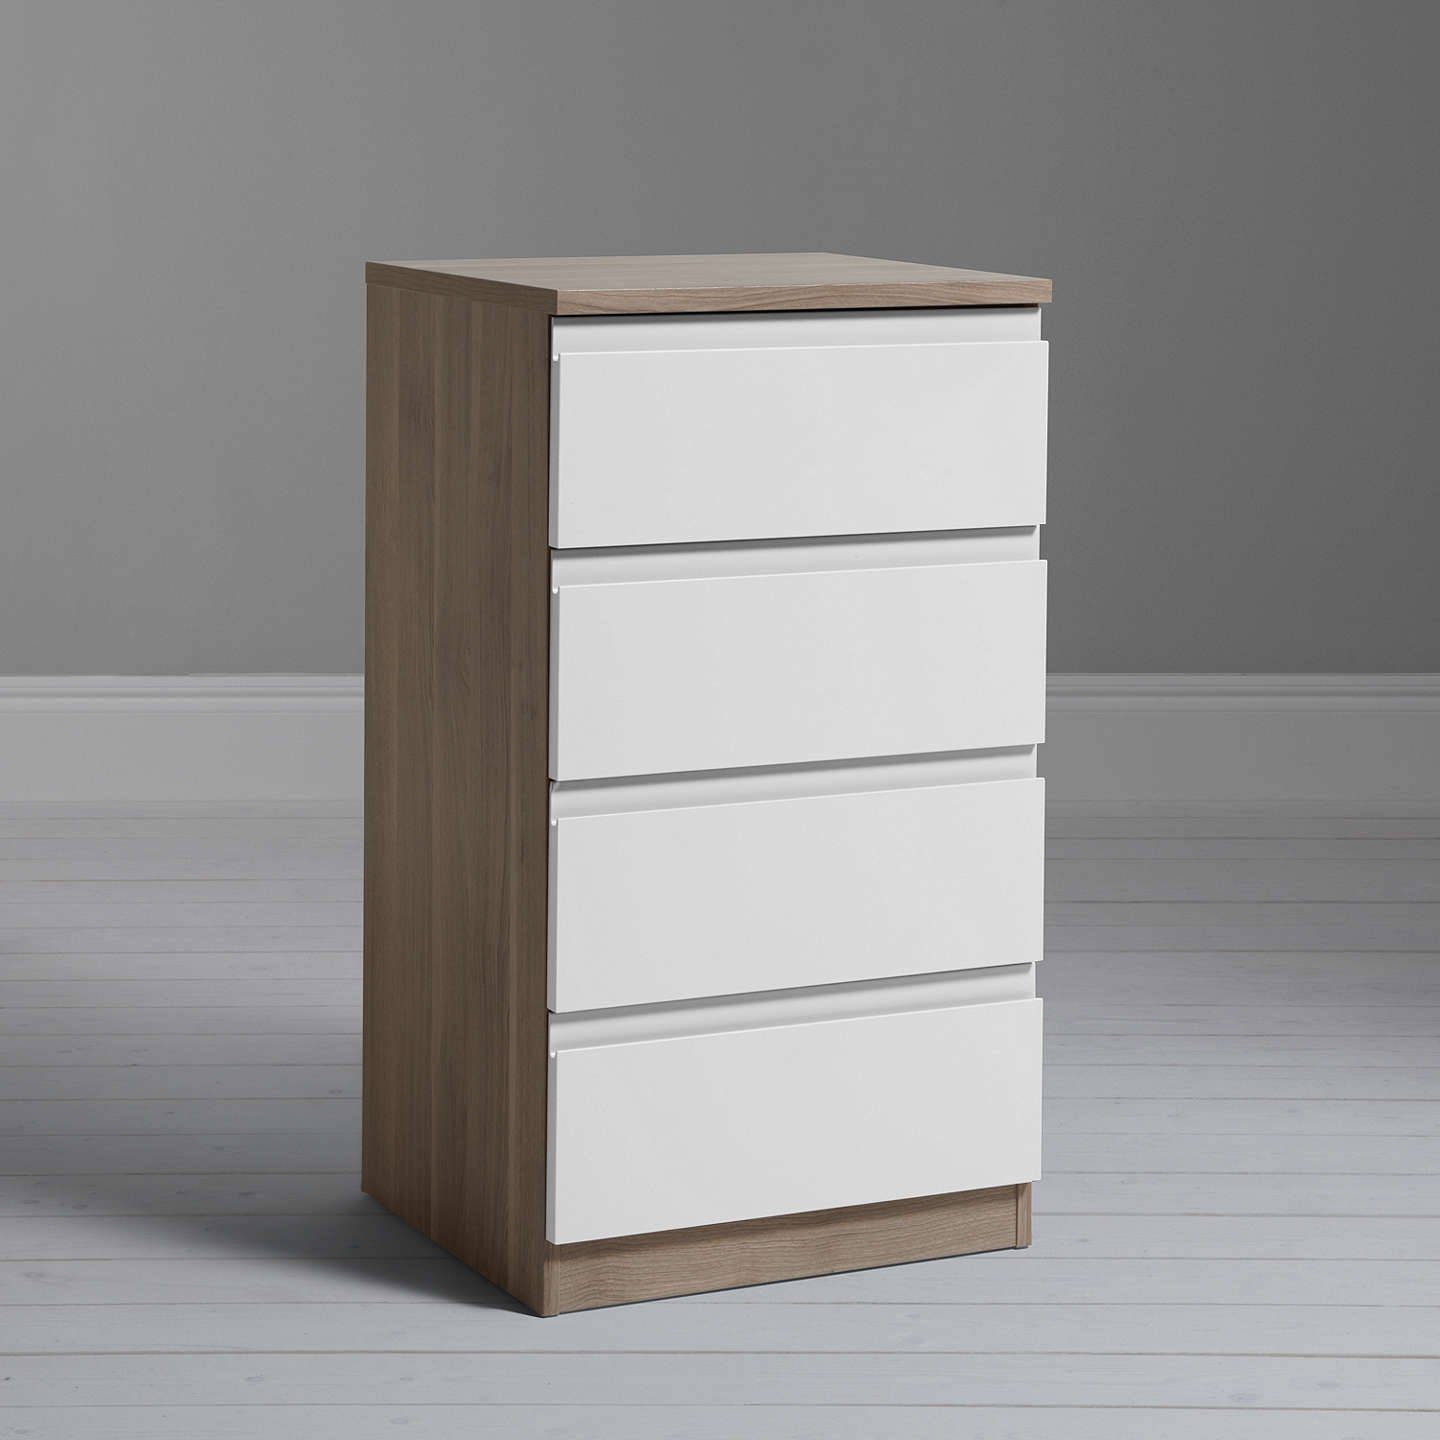 BuyHouse by John Lewis Mix it Narrow 4 Drawer Chest, Gloss White/Grey Ash Online at johnlewis.com